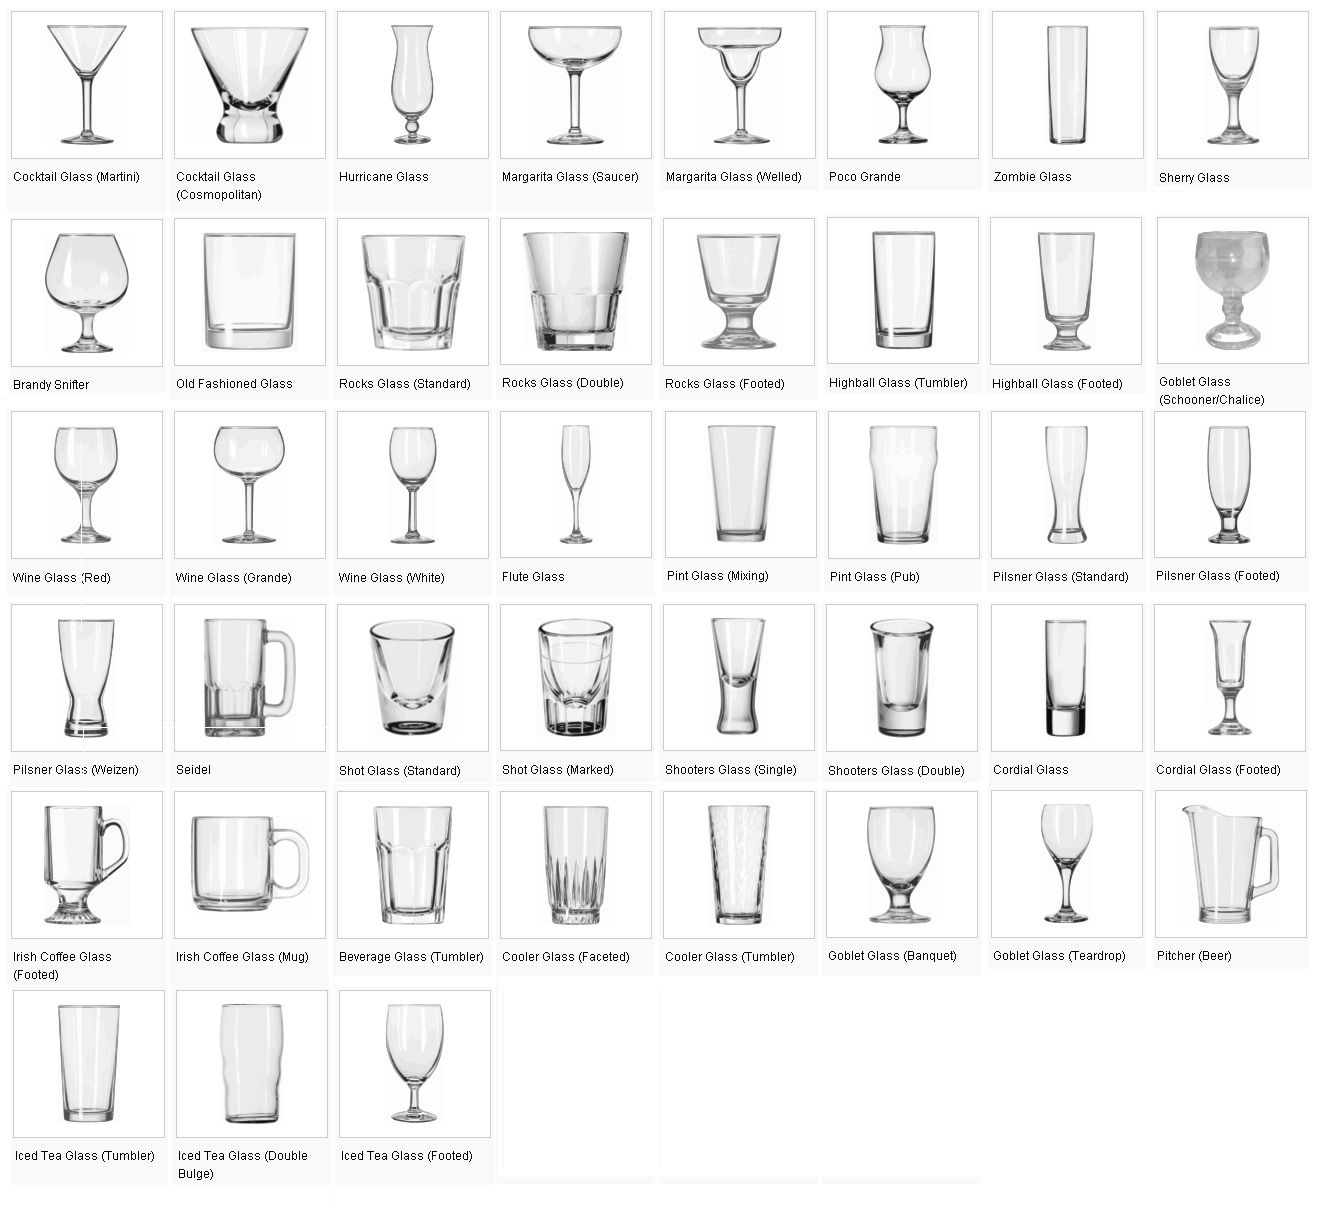 types of wine glasses chart | Party Glassware